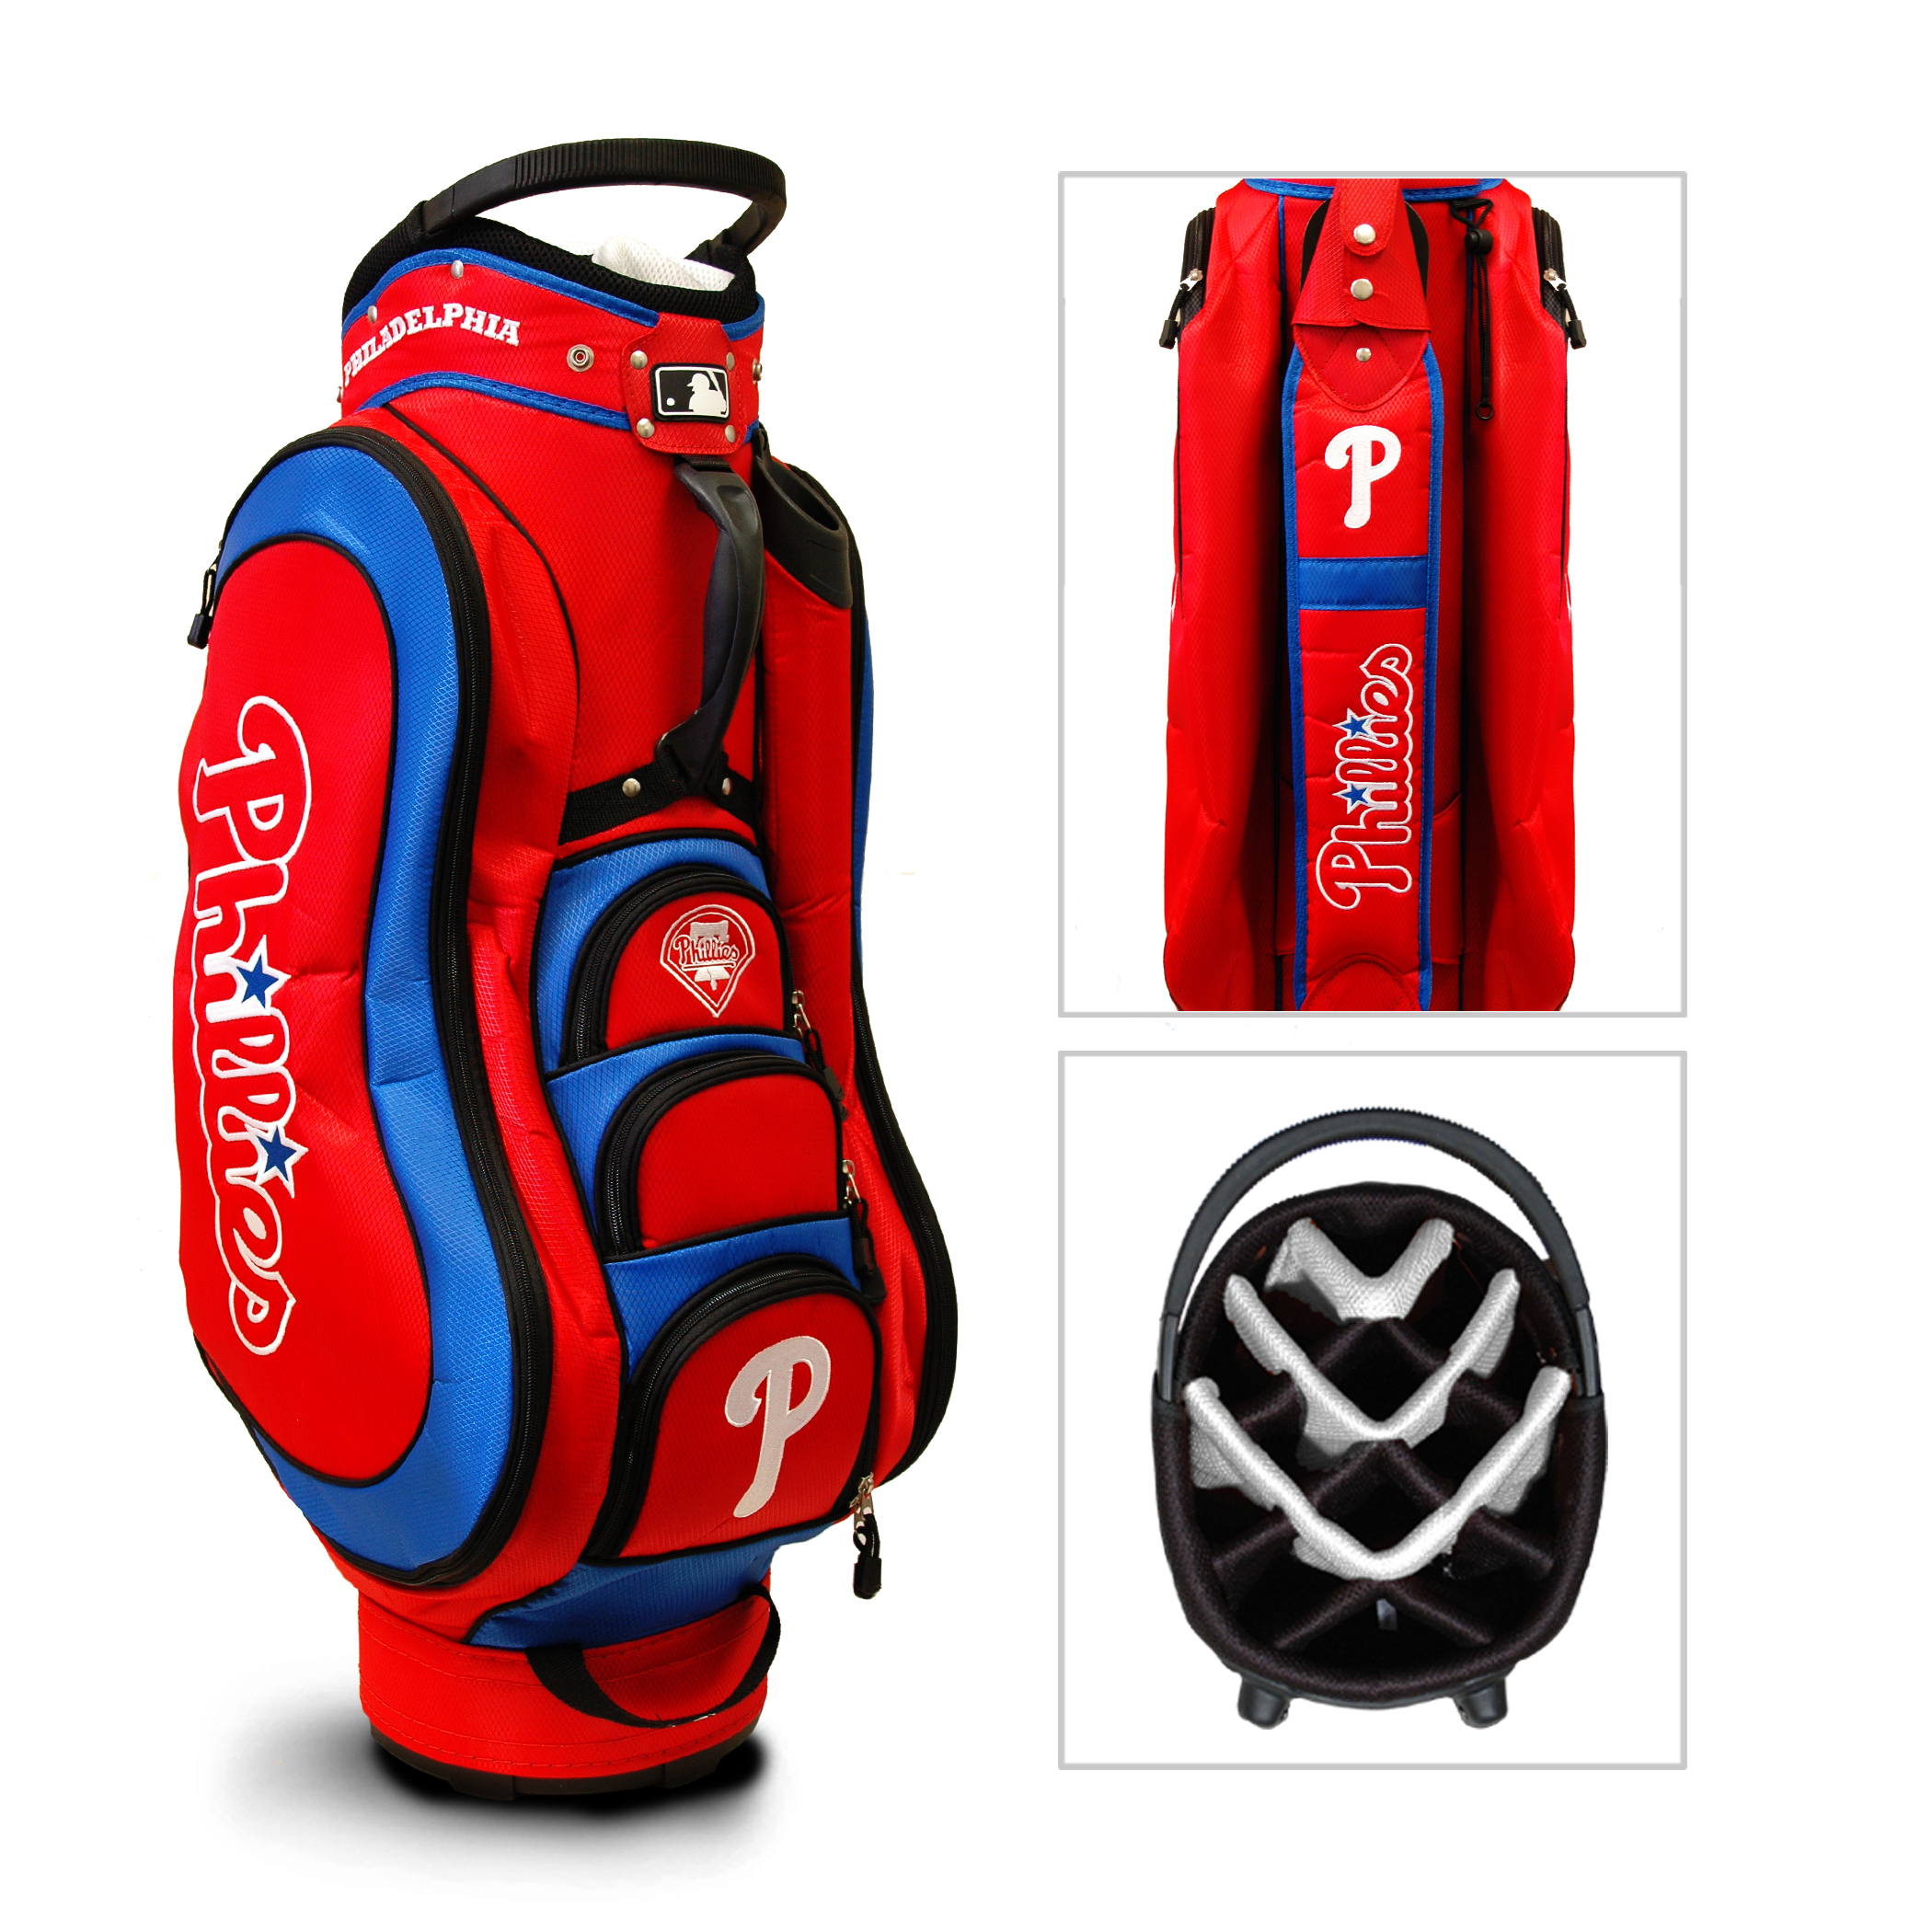 Team Golf MLB Medalist Golf Cart Bag